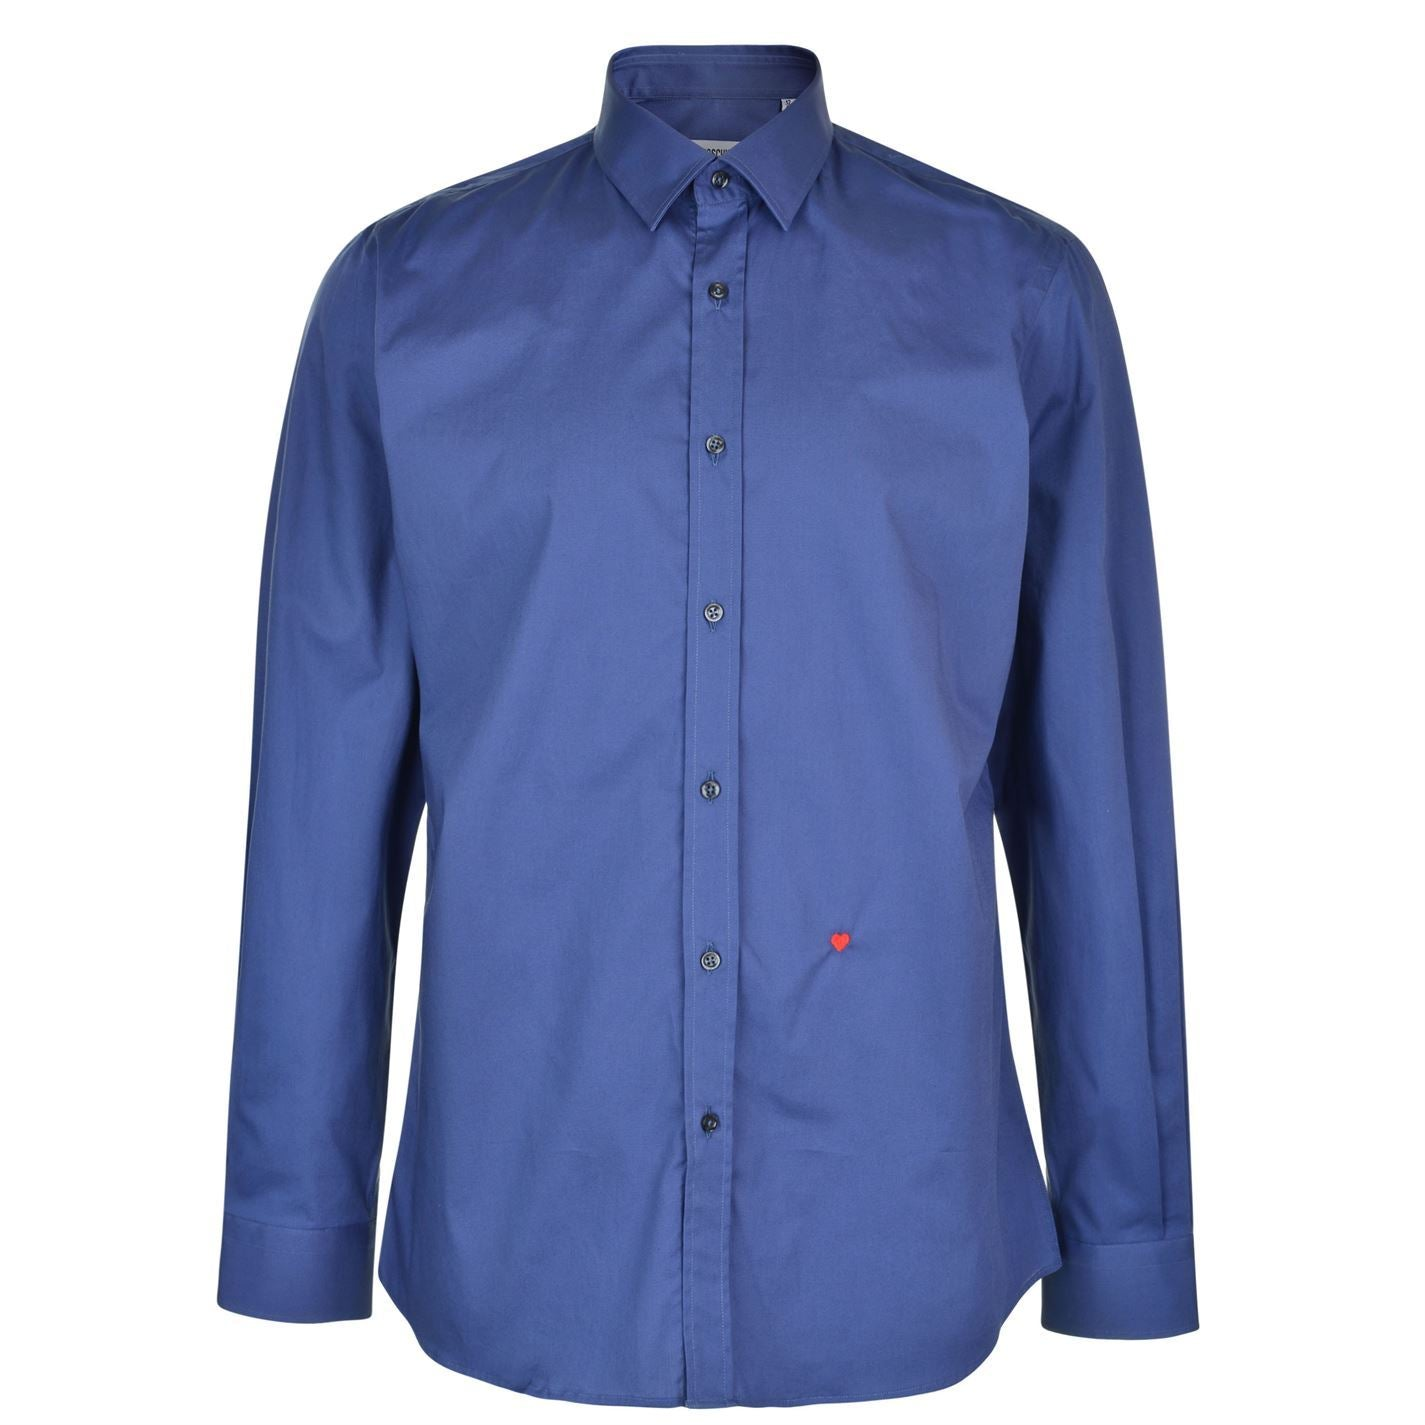 Moschino HR701X1B 65301 06 Dark Blue Casual Shirt